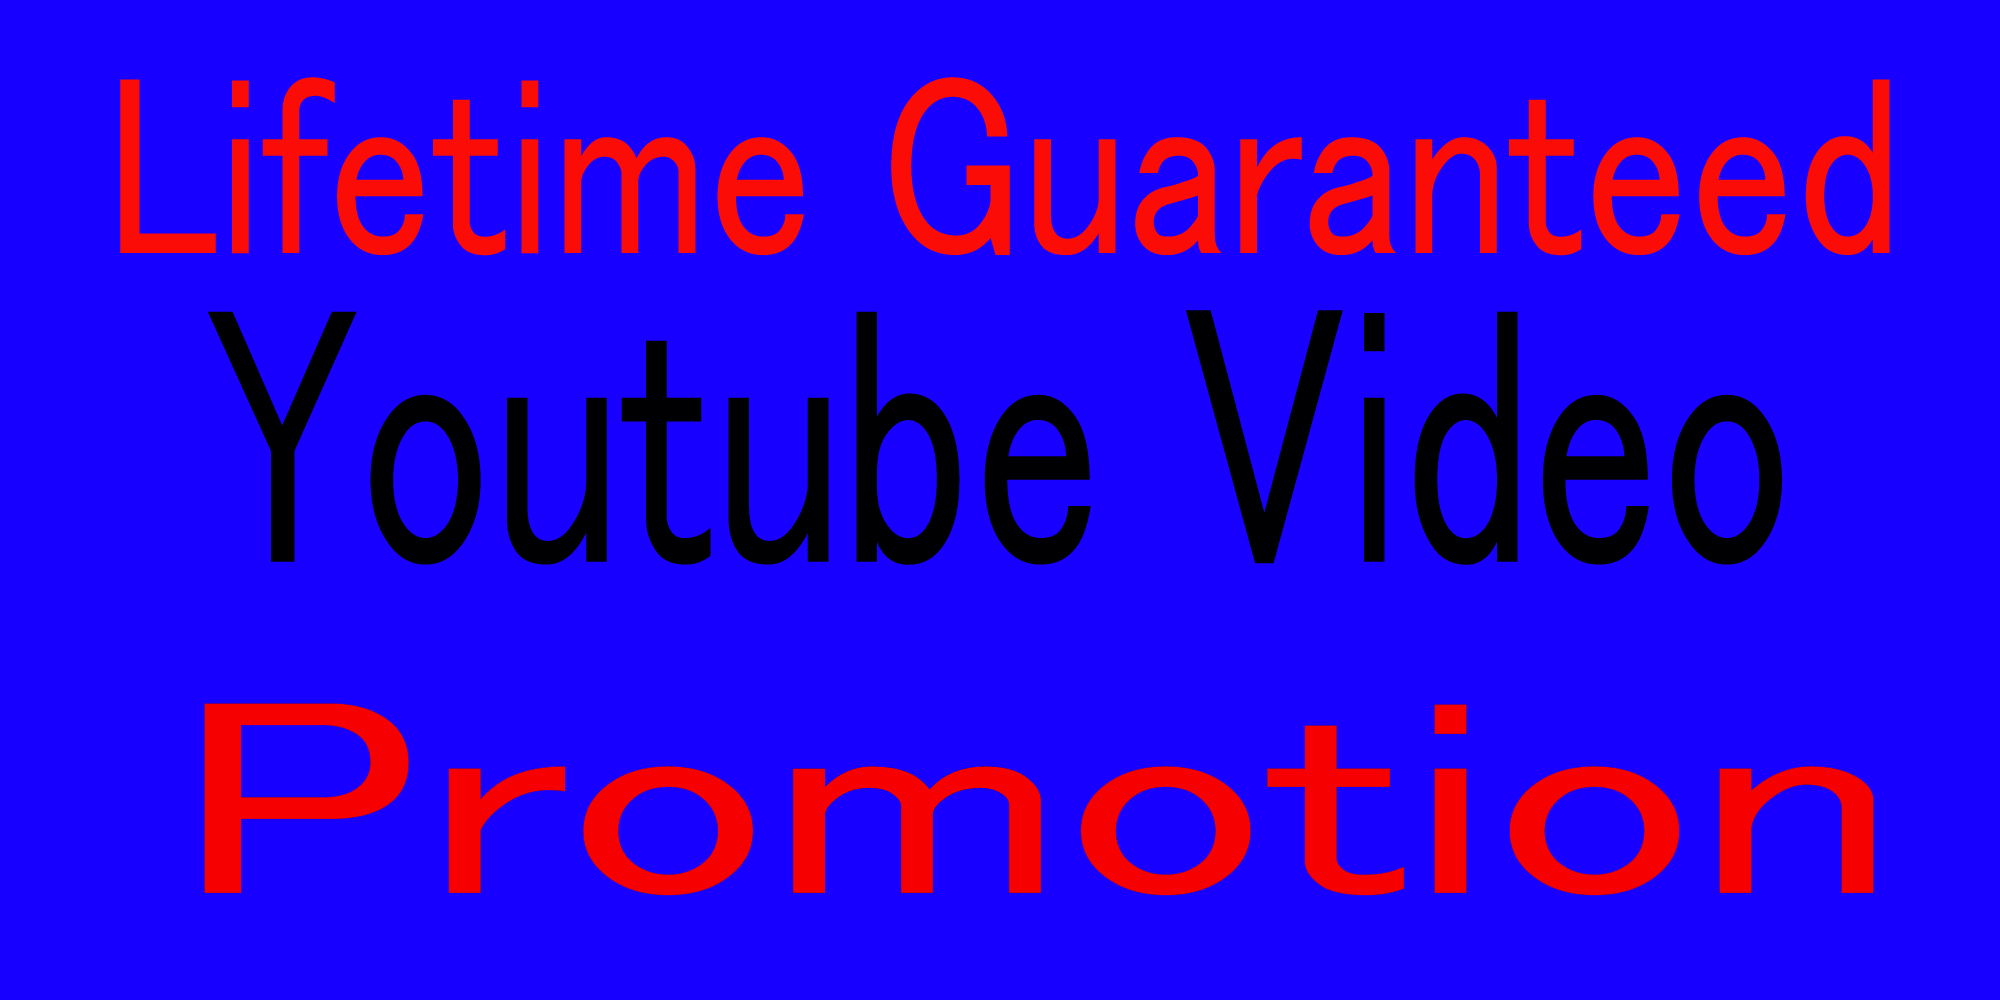 HQ YouTube music and video promotion via social media marketing